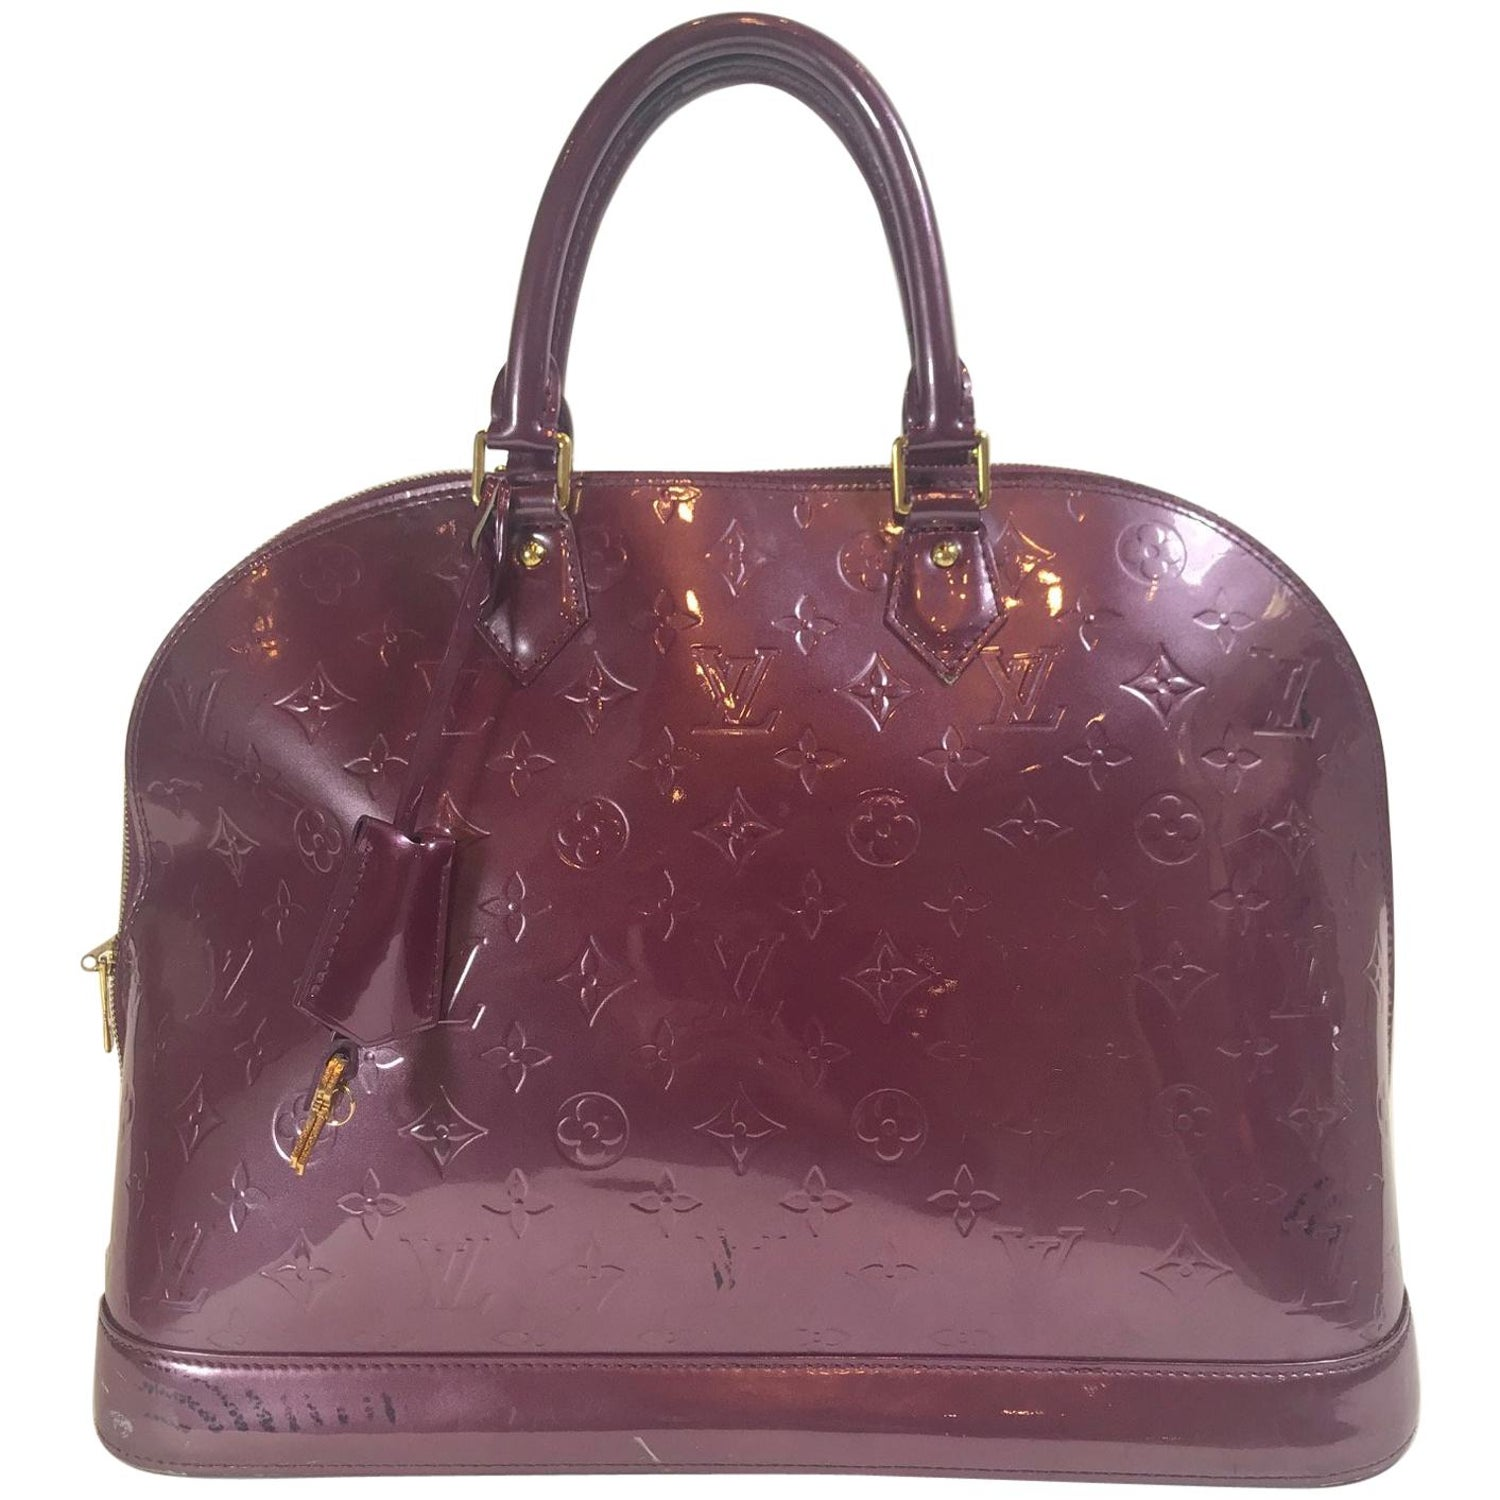 Louis Vuitton Vernis Alma GM For Sale at 1stdibs 135792ba0052f